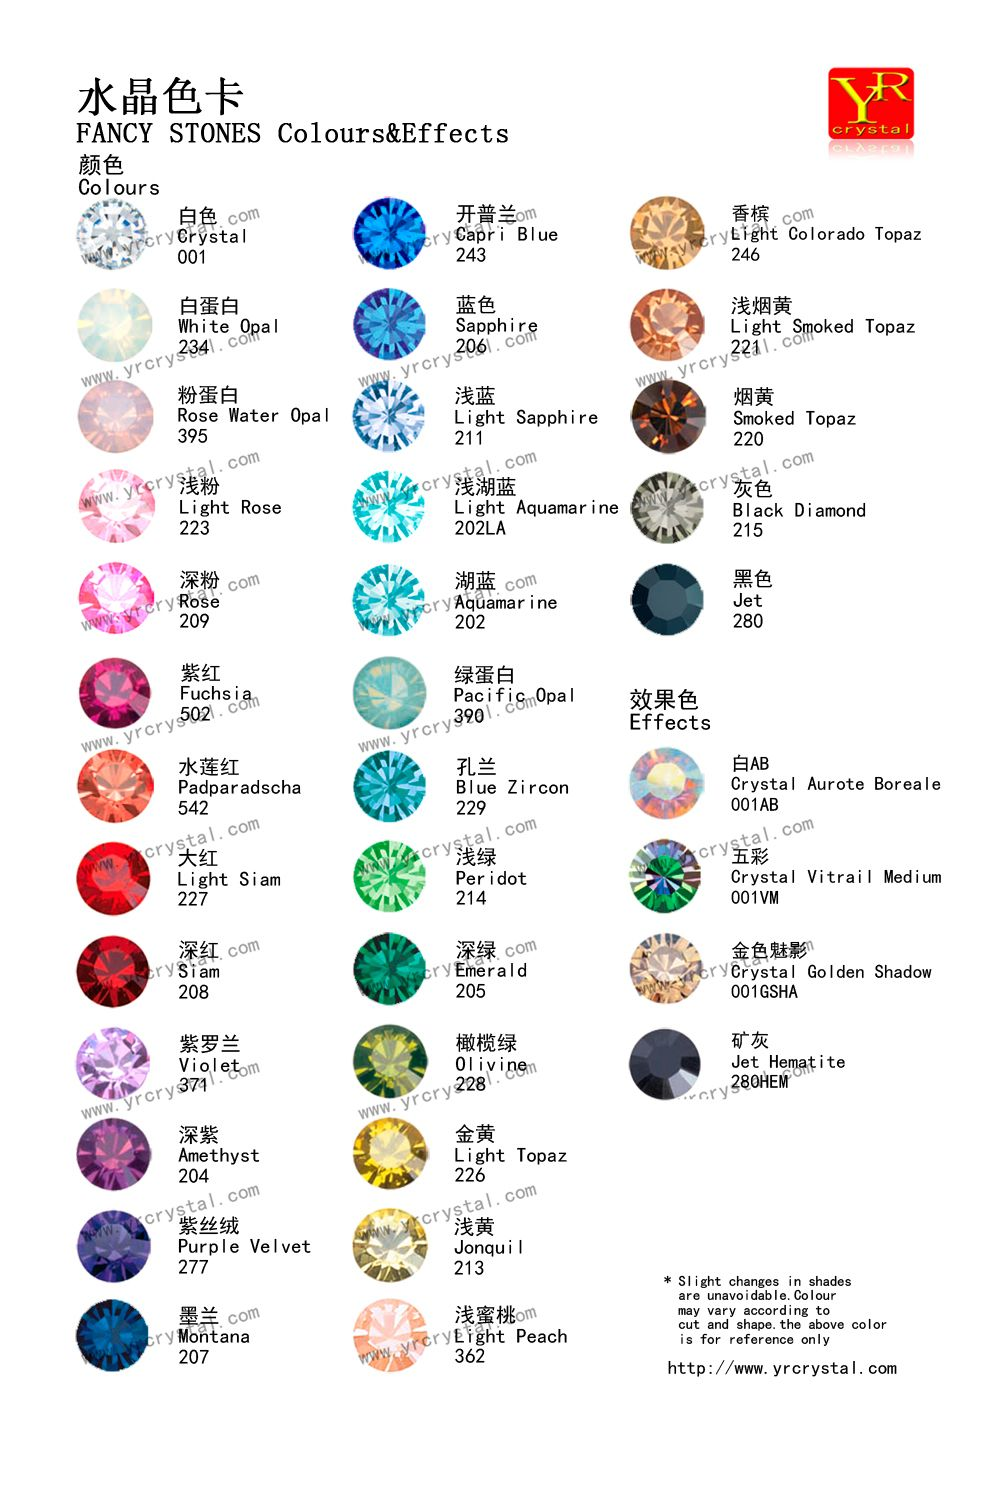 4320 water drop fancy stone clothing decoration crystal beads 4320 water drop fancy stone clothing decoration crystal beads buy clothing decoration crystal beads4320 water drop fancy stoneclothing beads product on nvjuhfo Gallery